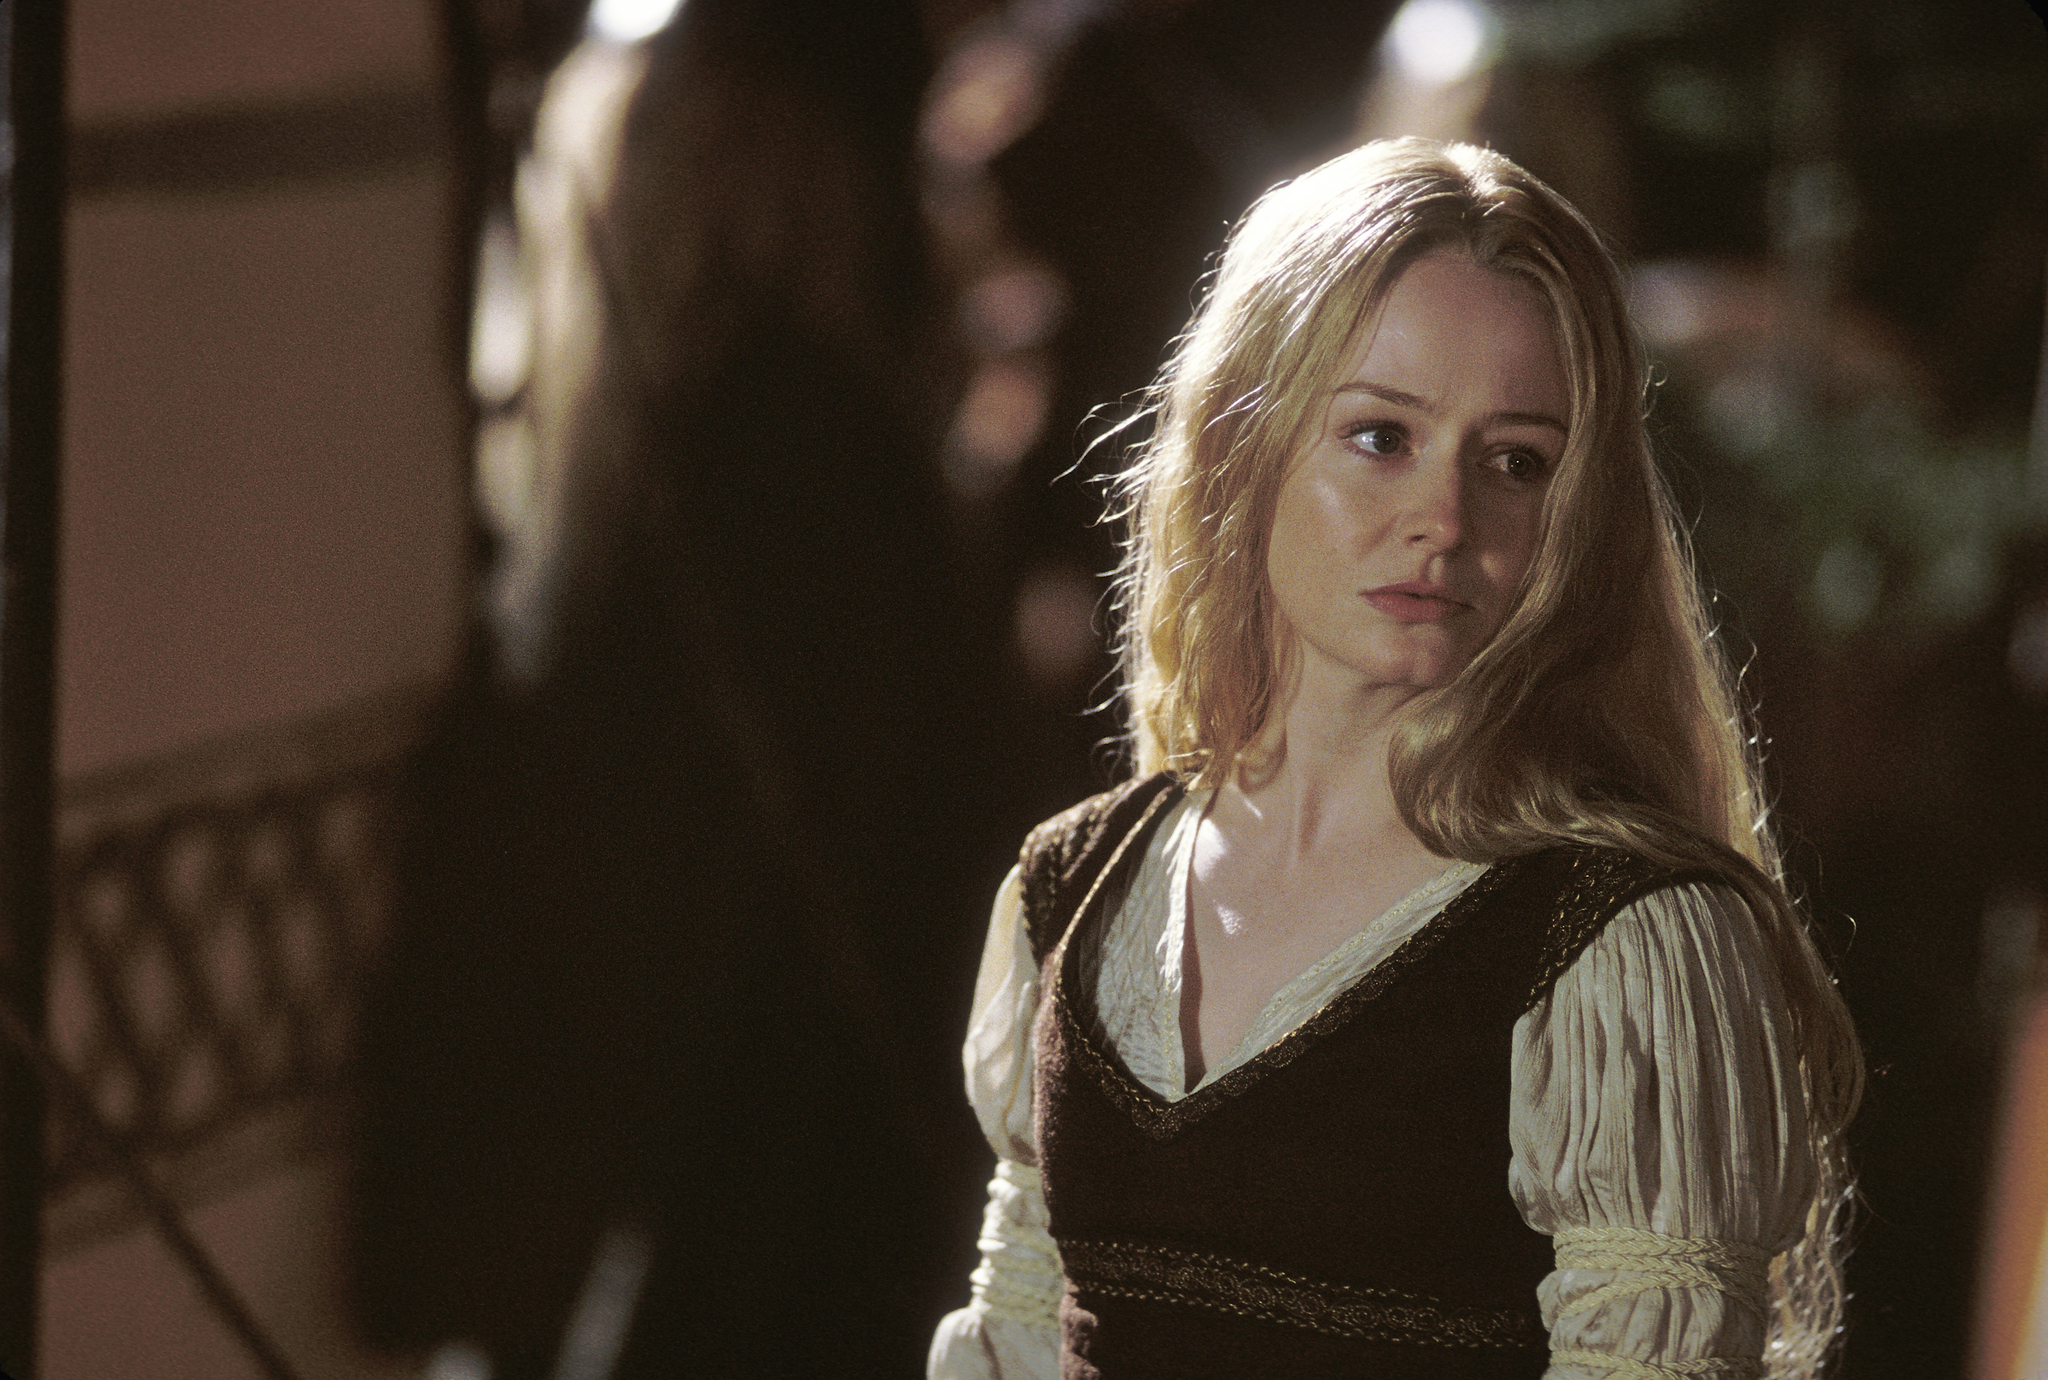 Miranda Otto in The Lord of the Rings: The Return of the King (2003)